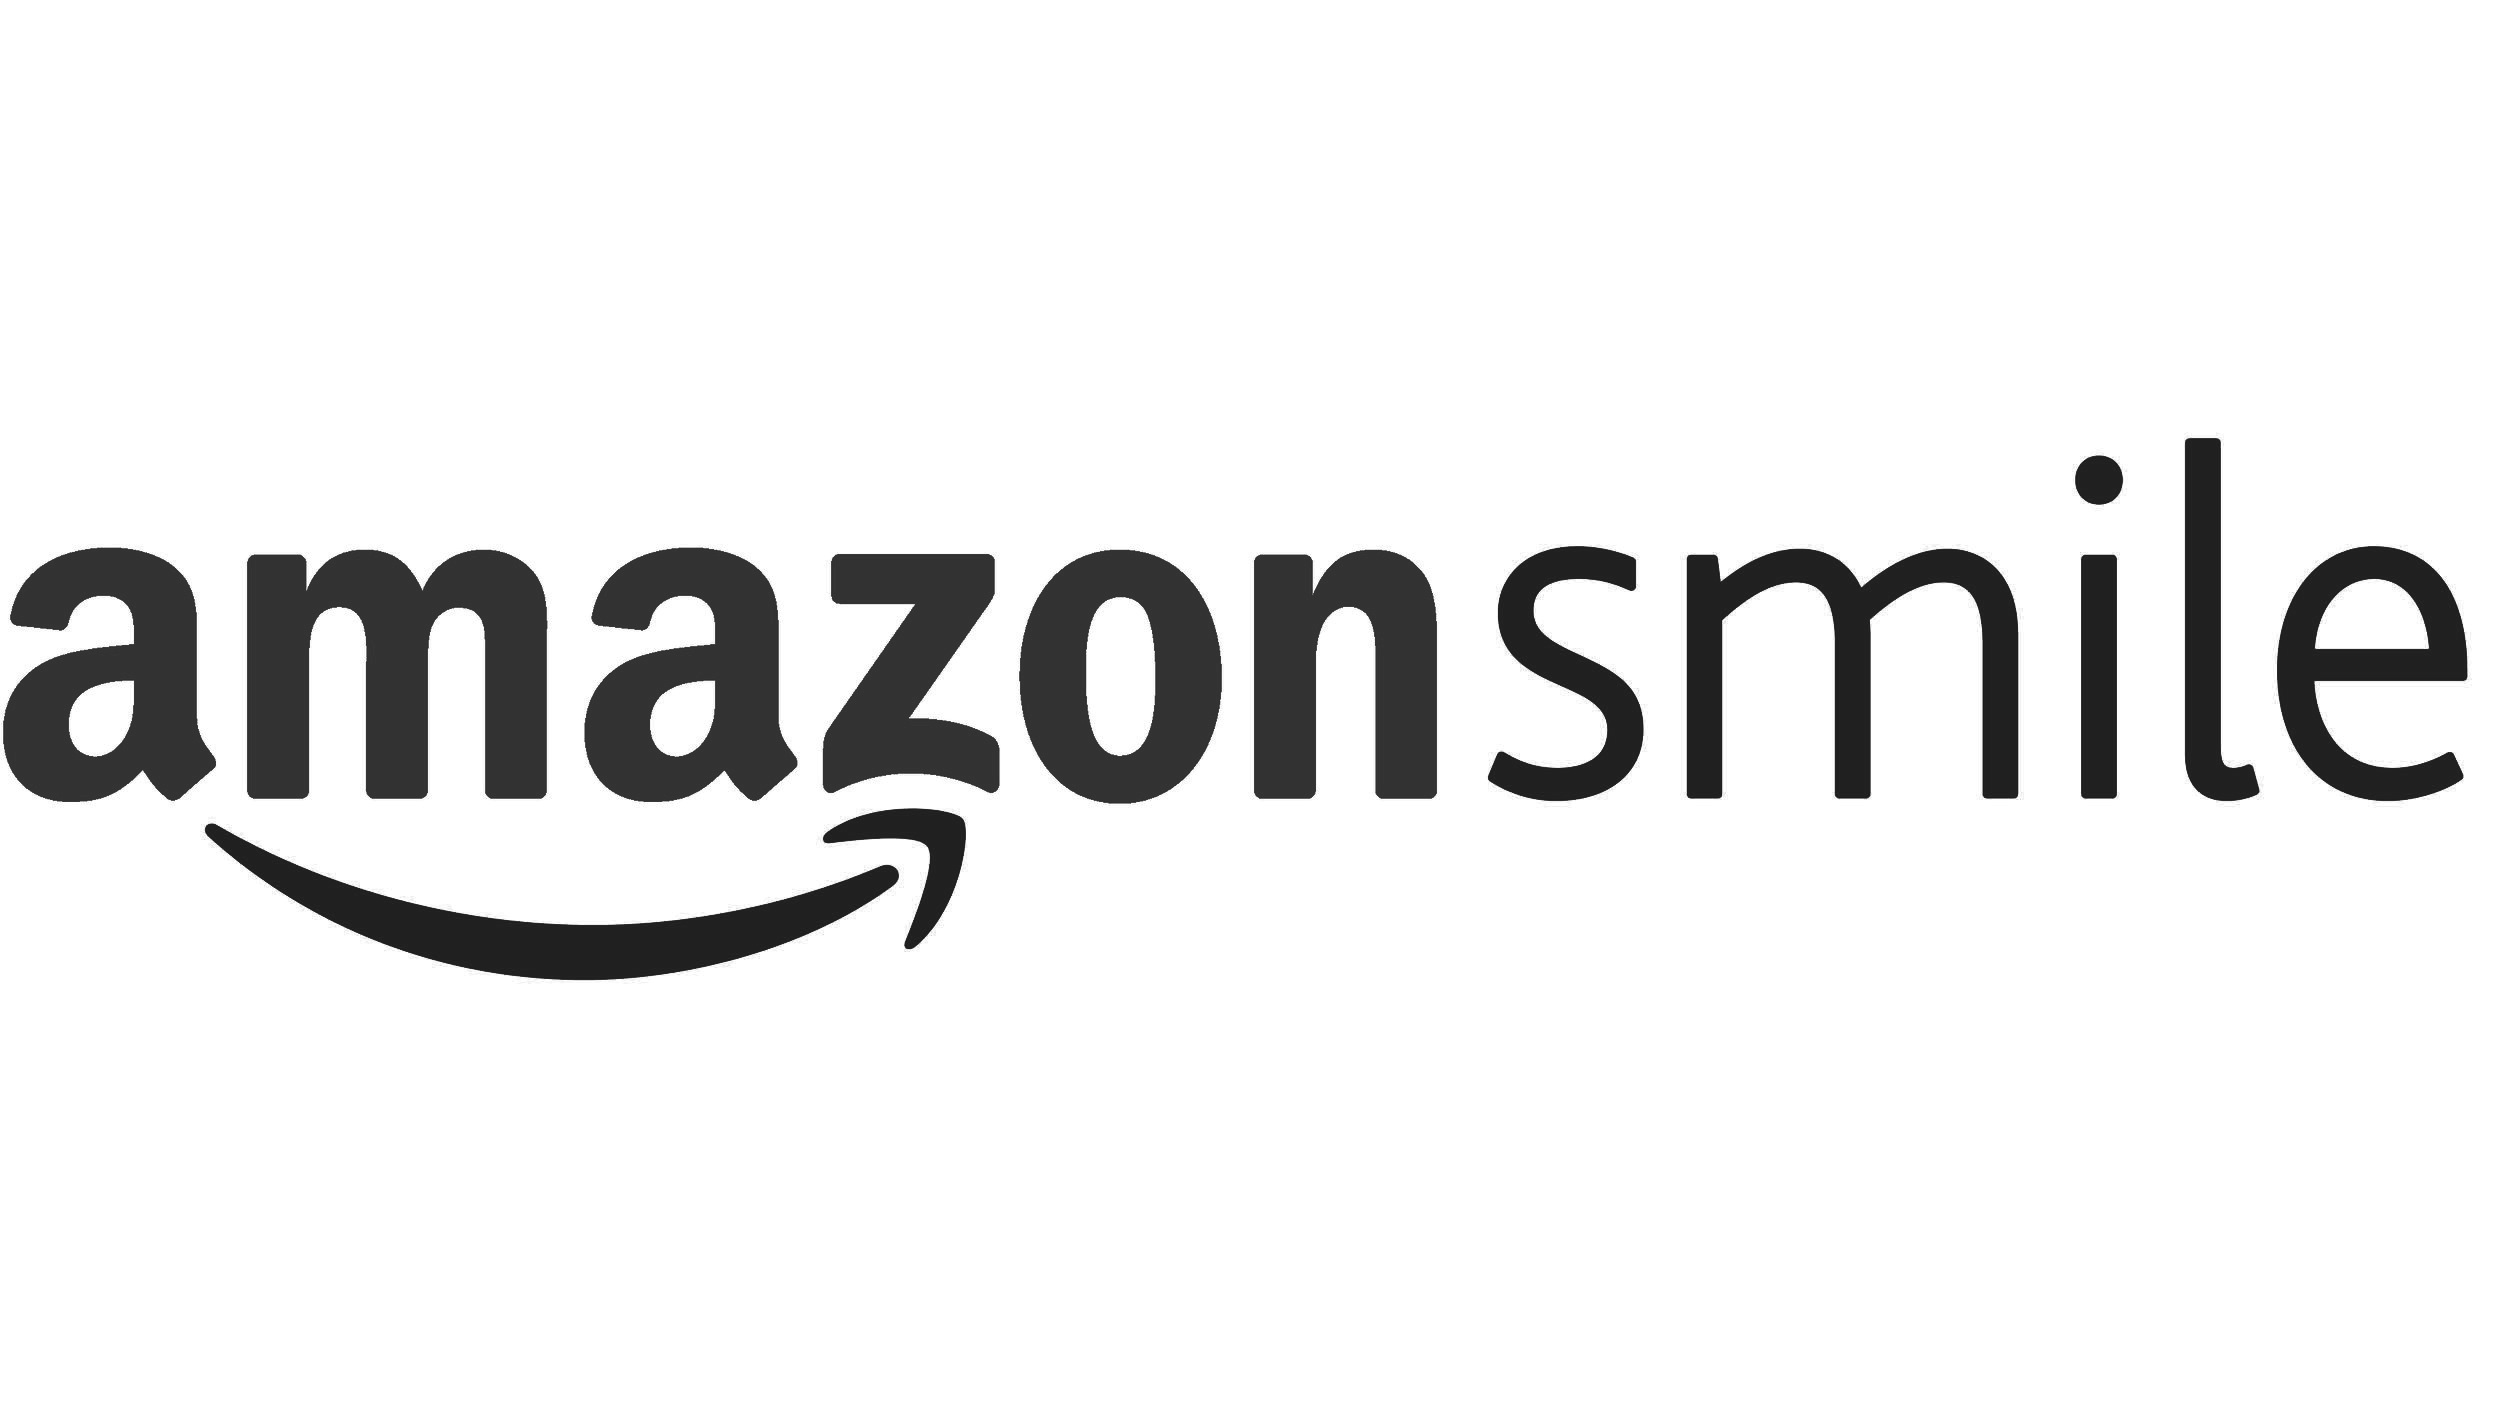 AmazonSmile_white_and_orange_logo.jpg